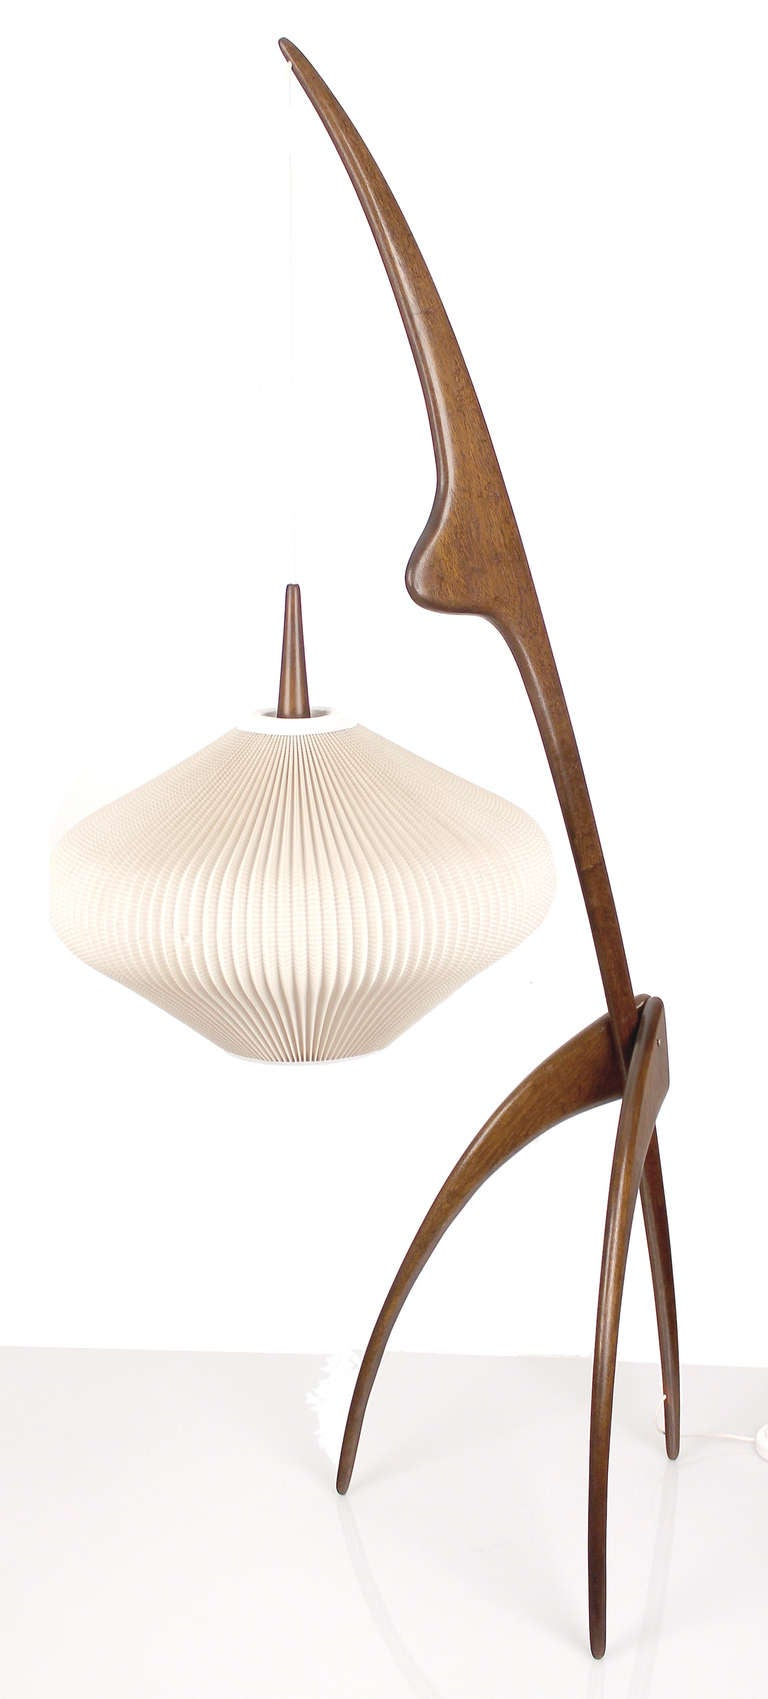 century j rispal praying mantis floor lamp is no longer available. Black Bedroom Furniture Sets. Home Design Ideas